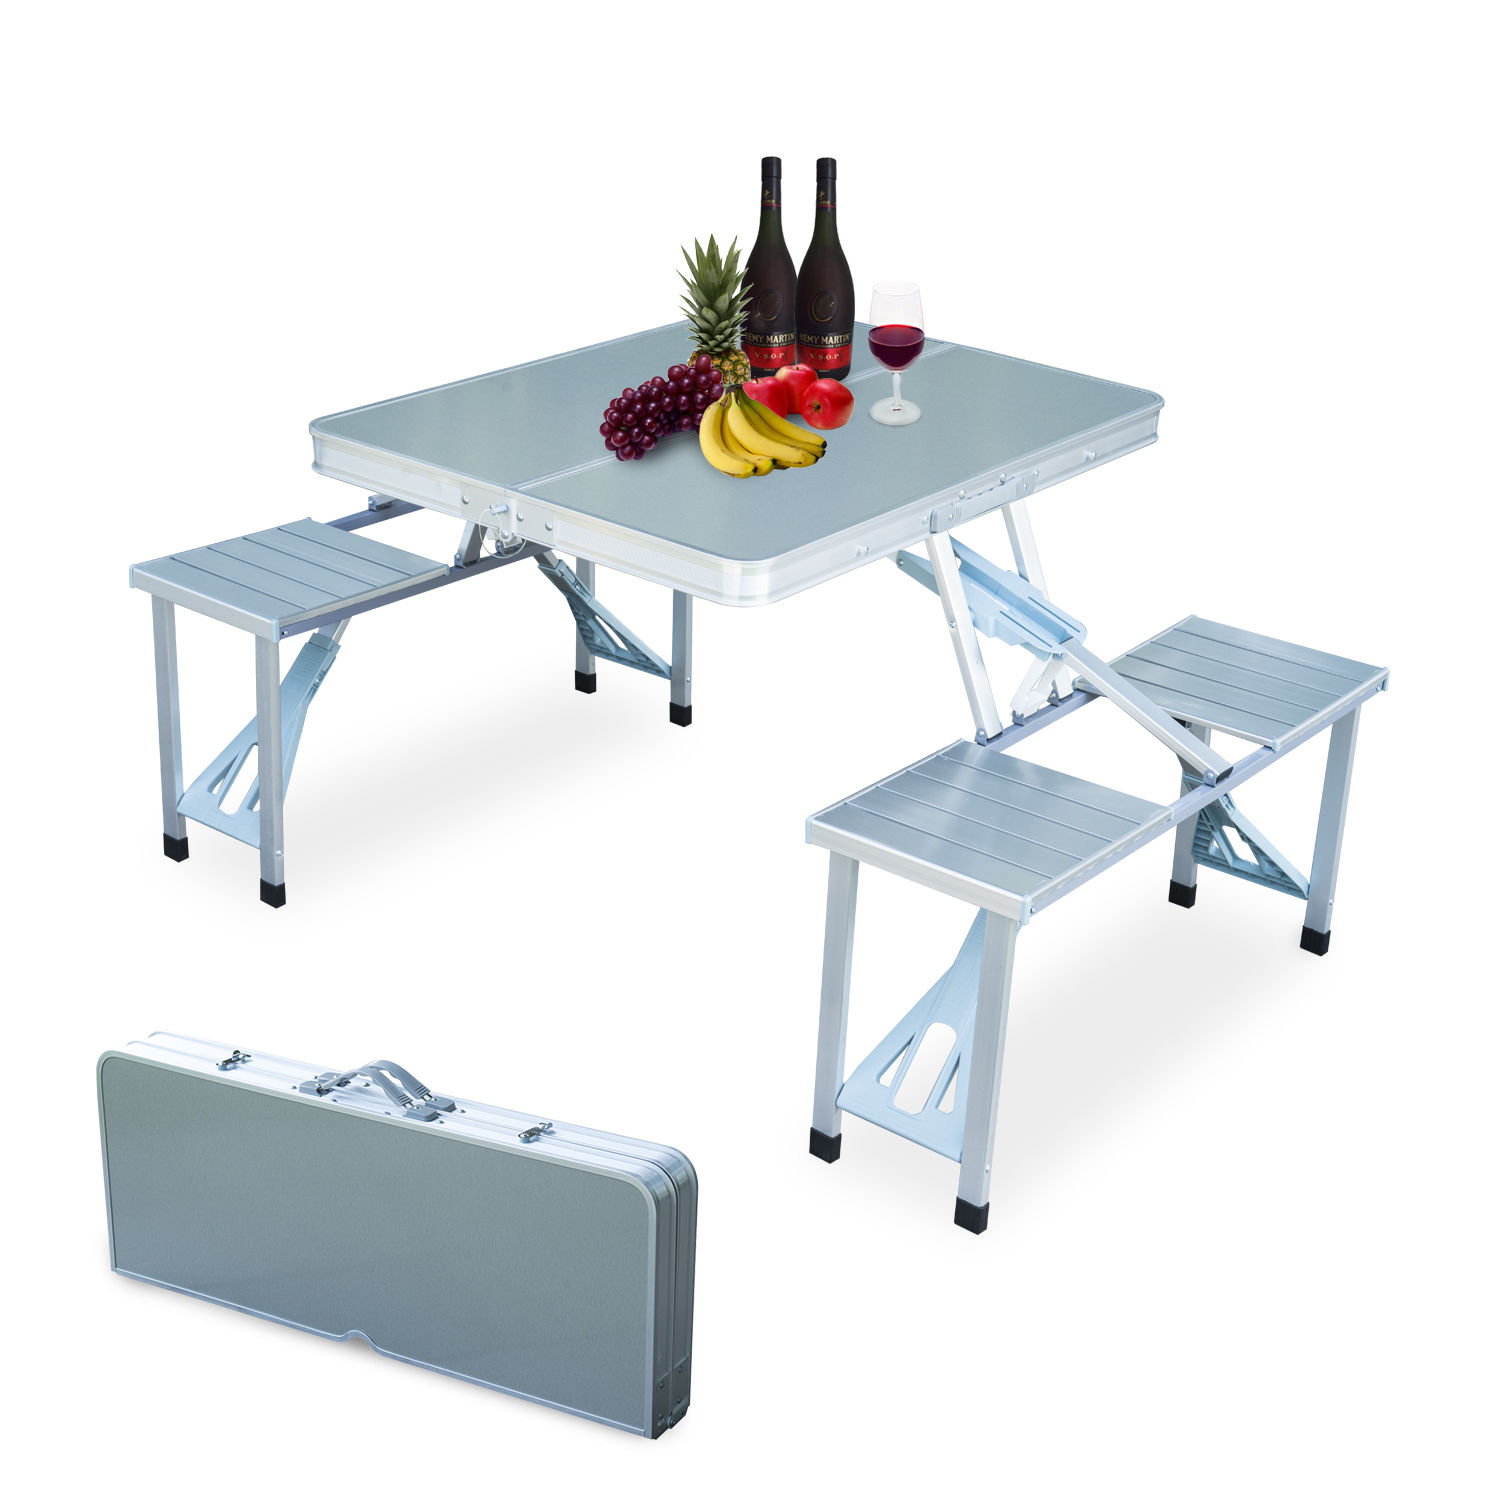 Portable-Folding-Camping-Picnic-Table-Party-Outdoor-Garden-Chair-Stools-Set thumbnail 43